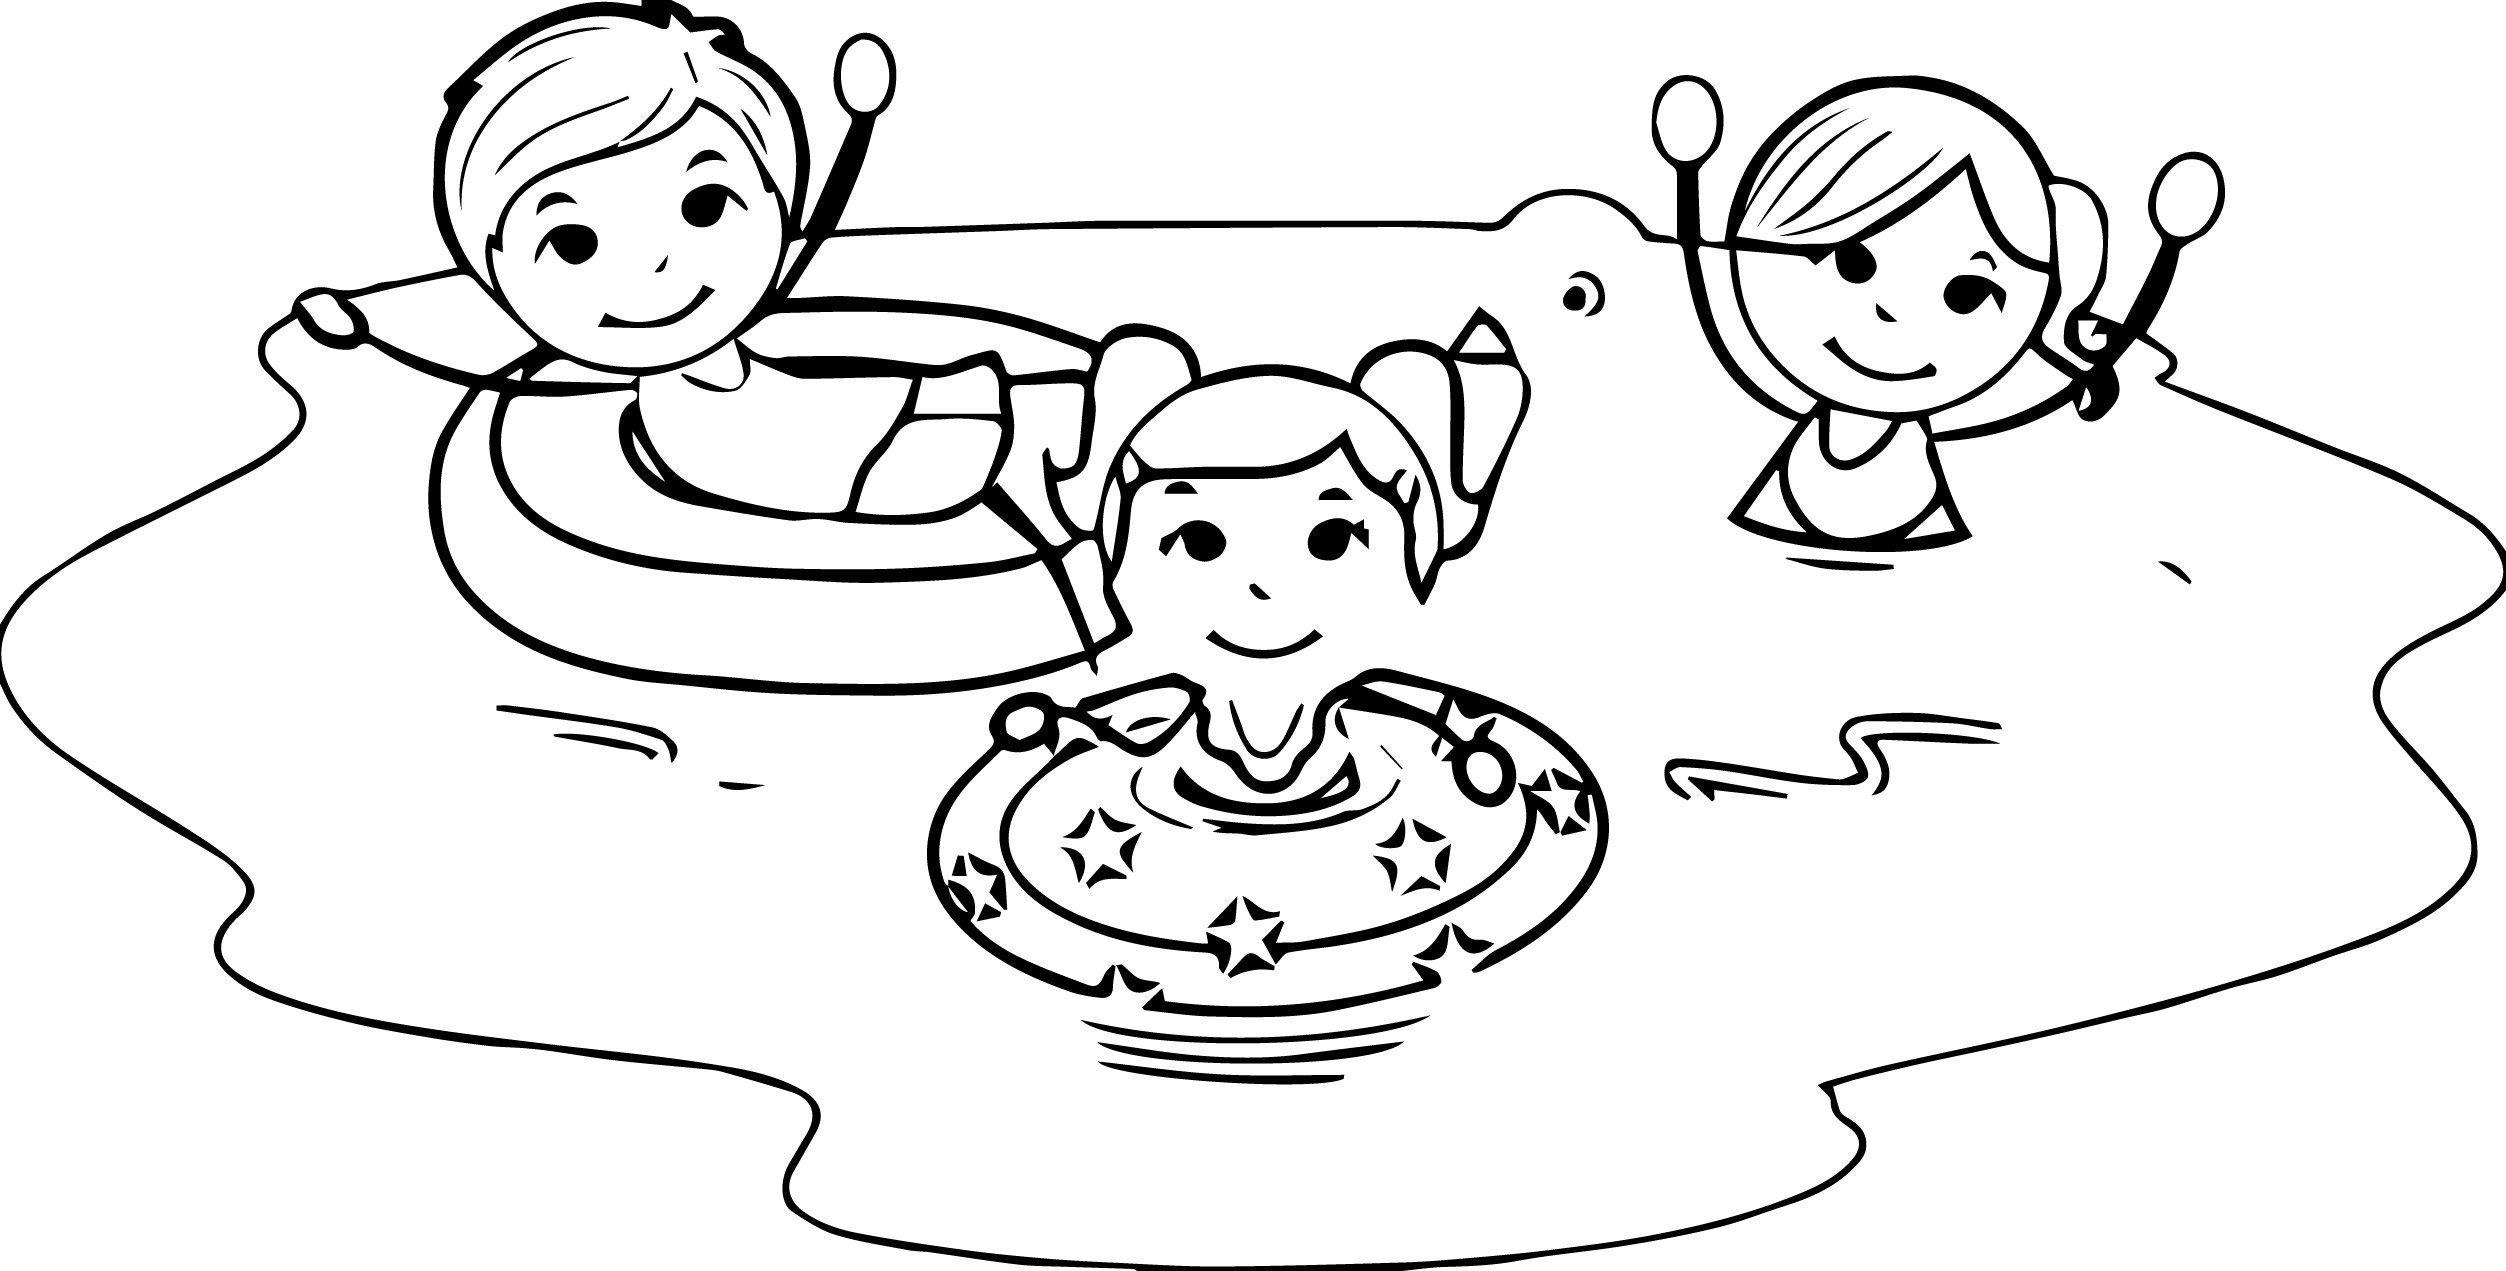 New and white collection. Black clipart summer